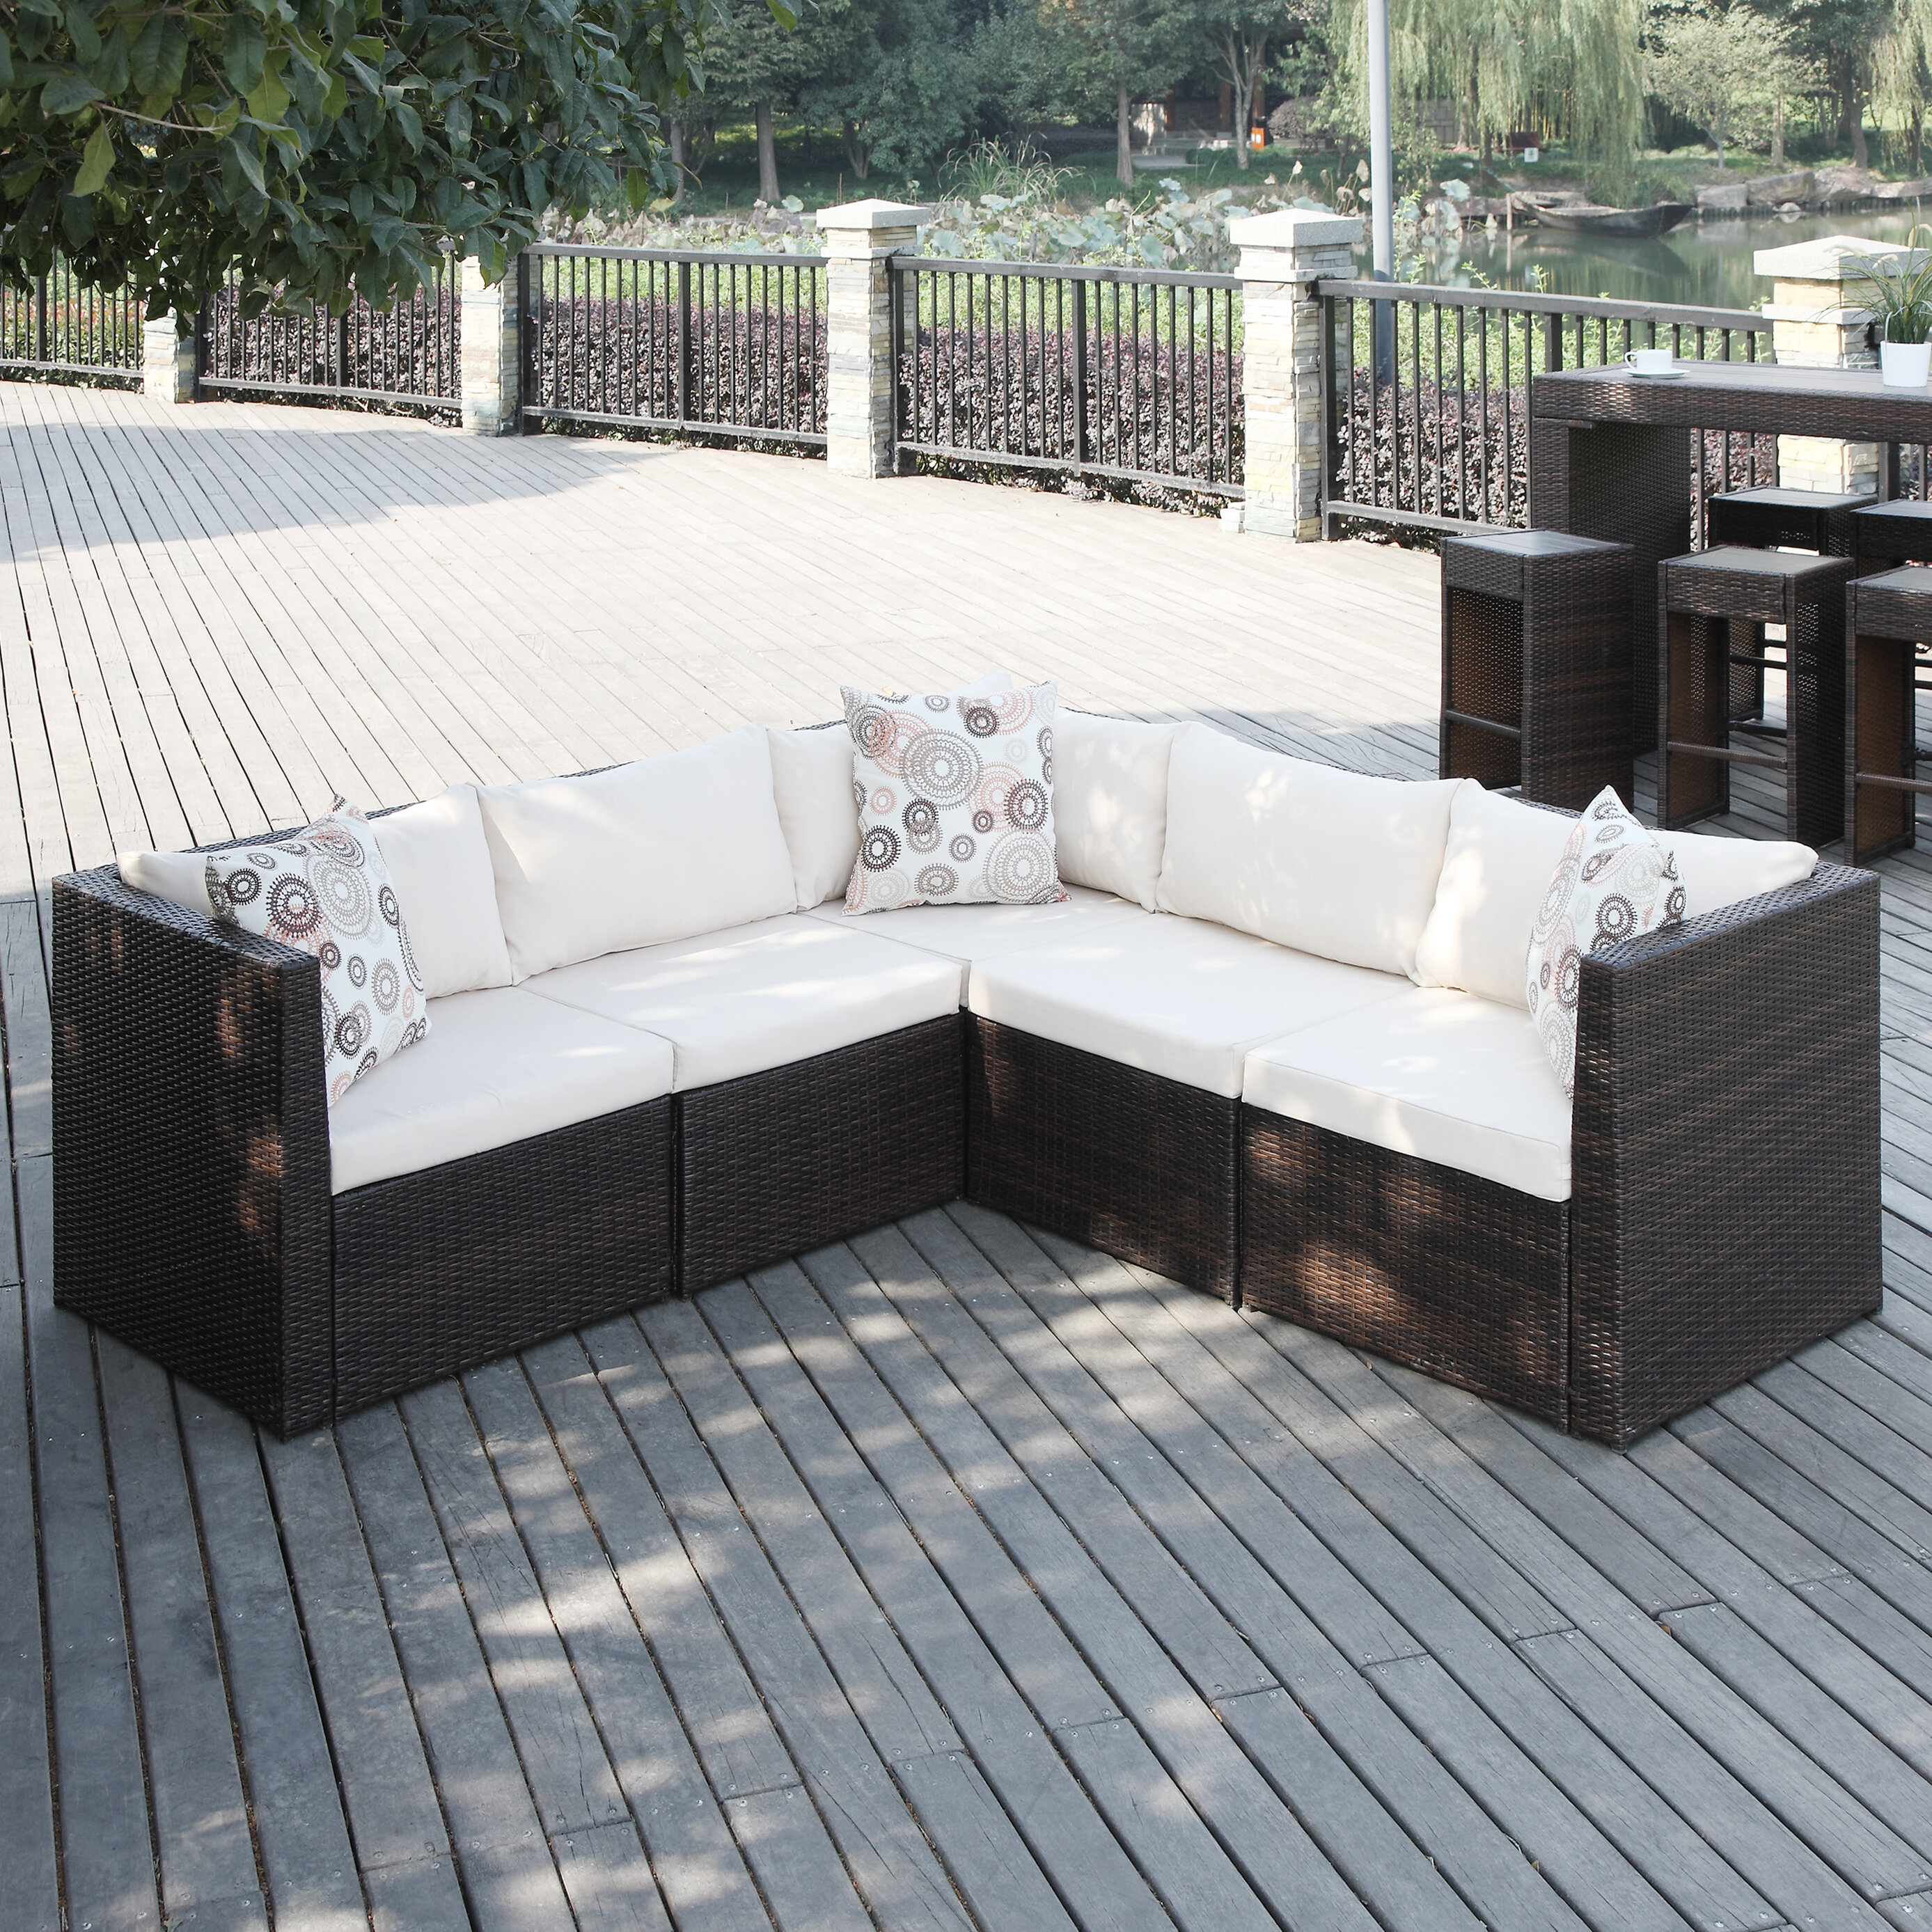 gallery of sectional elegant outdoor patio inspirational unique small for cushions furniture